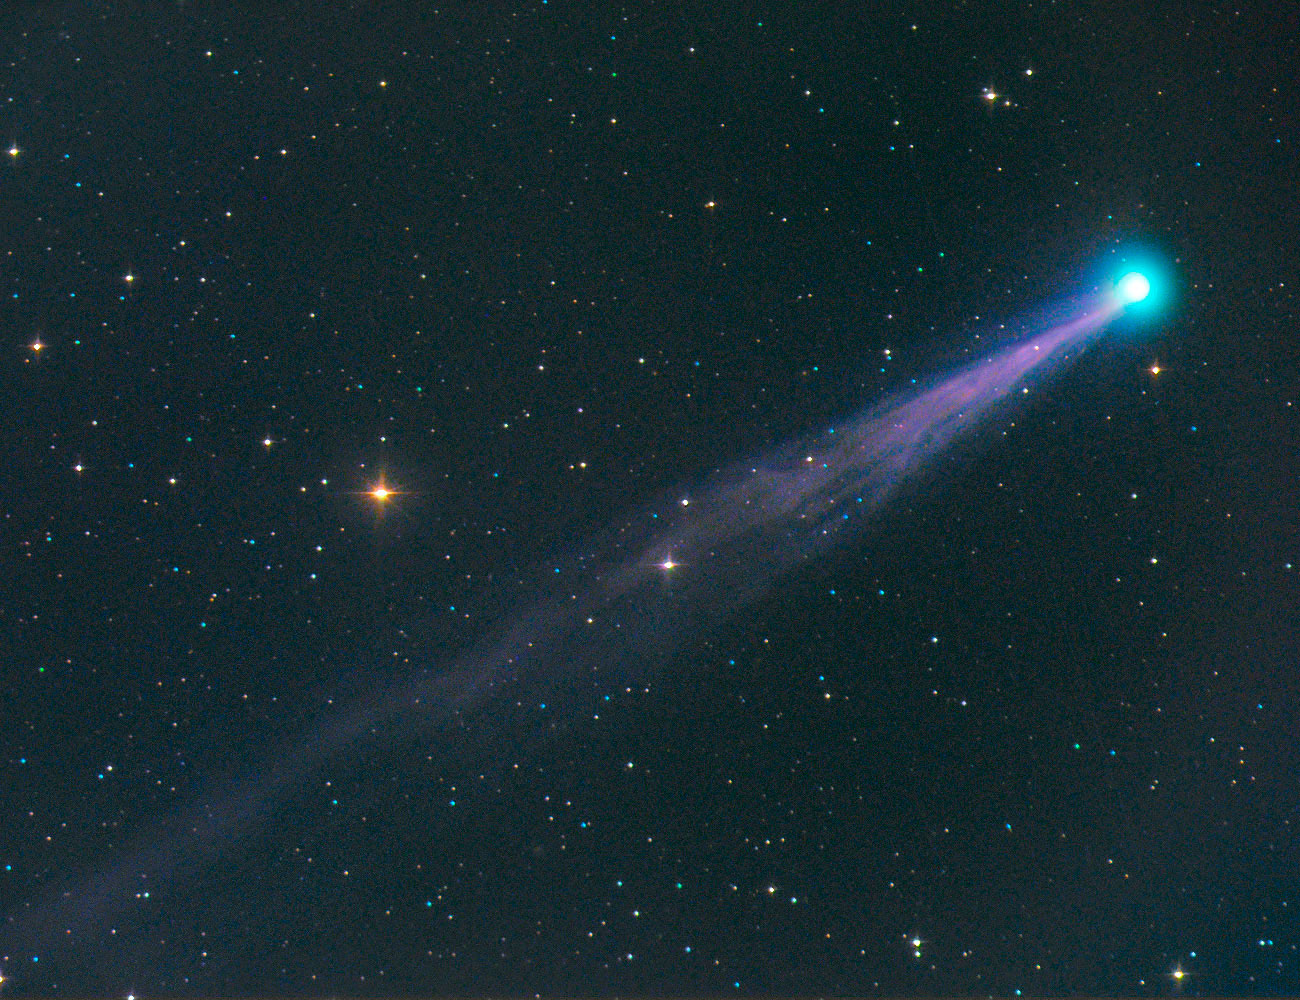 Comet SWAN (C2006 M4) arrived straight from the Oort cloud making its very first journey into the inner solar system by the end of June 2006